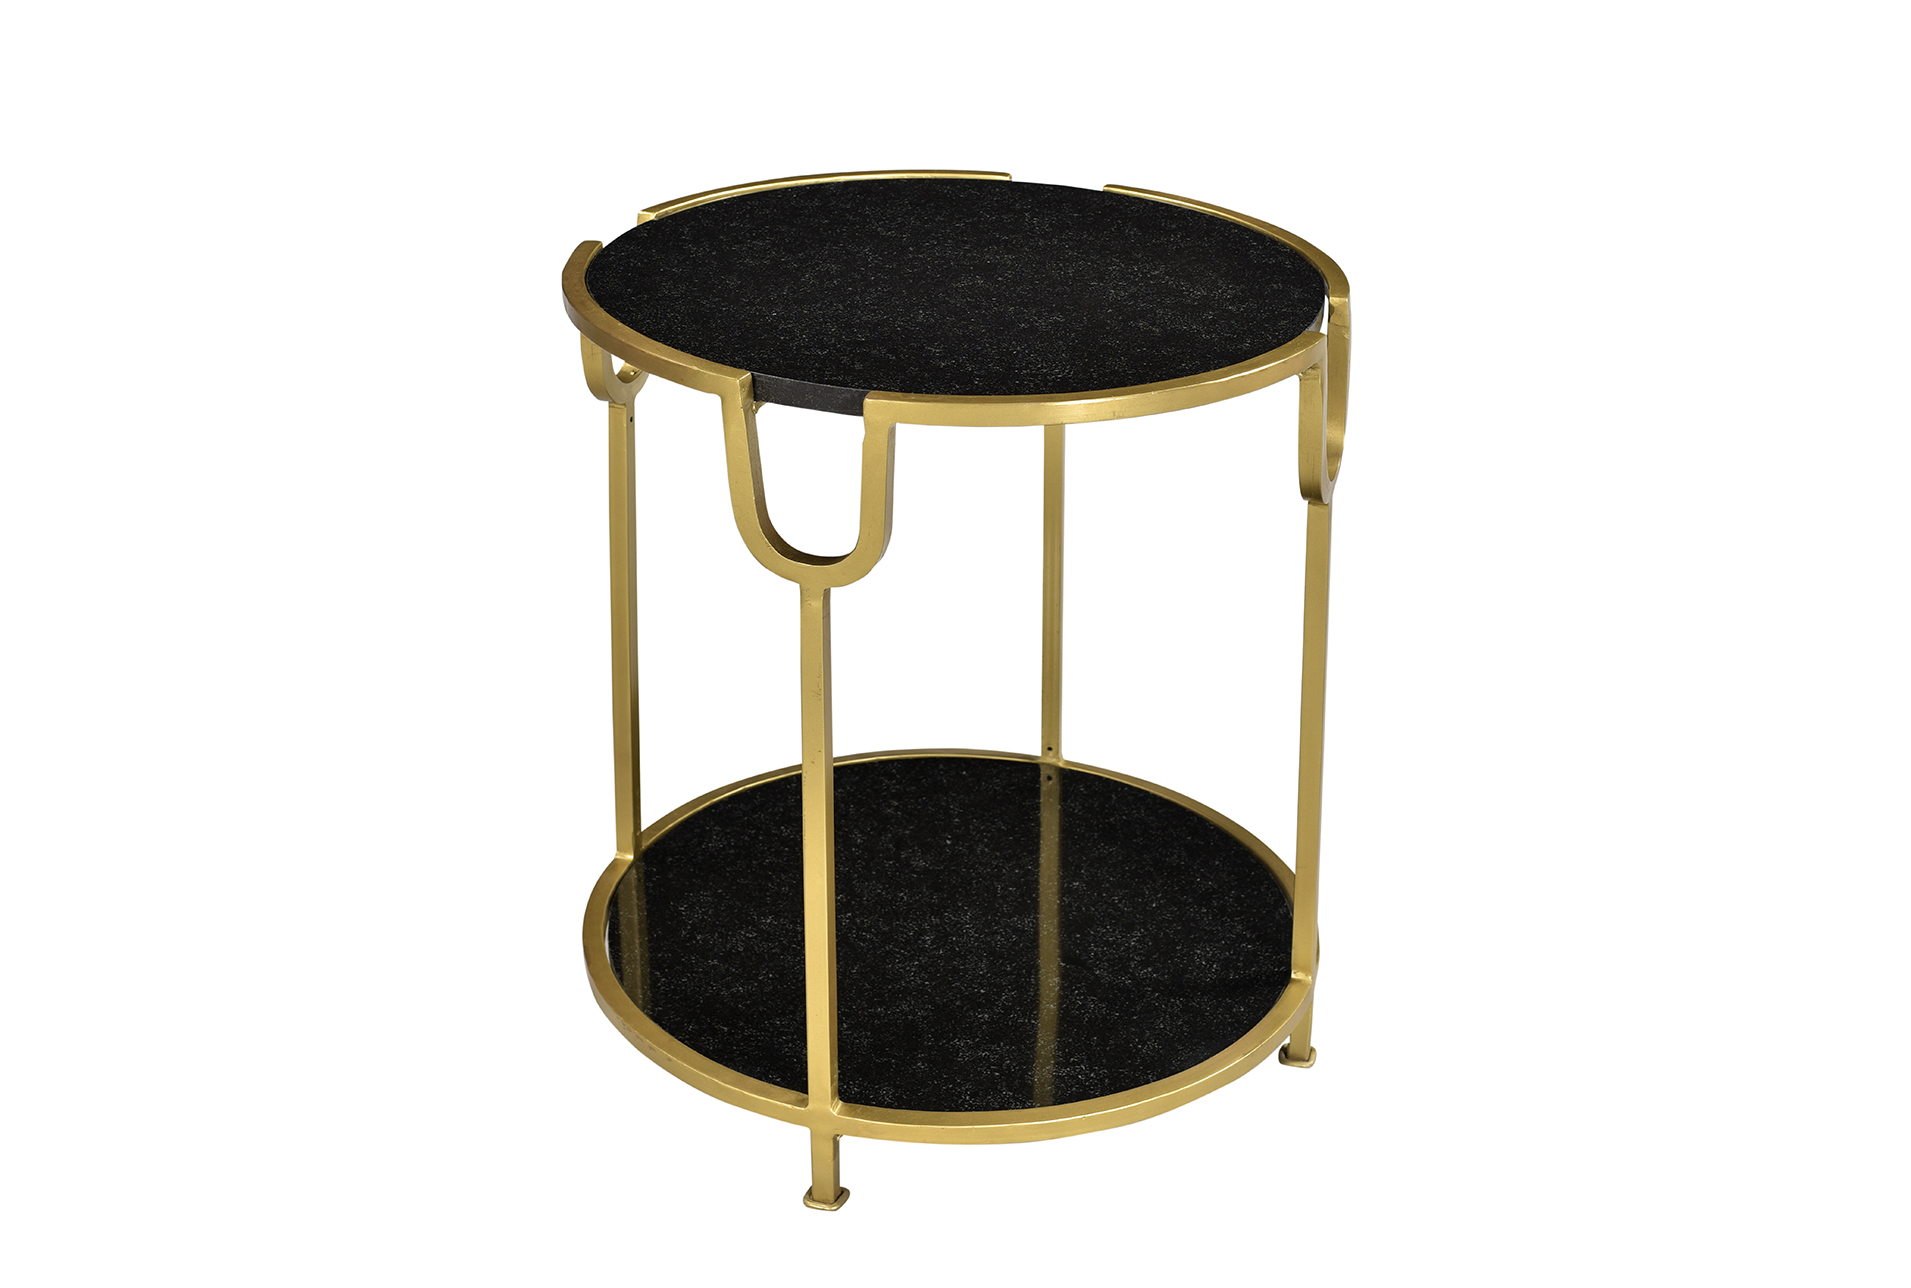 Iron Marble Side Table (Qty: 1) Has Been Successfully Added To Your Cart.